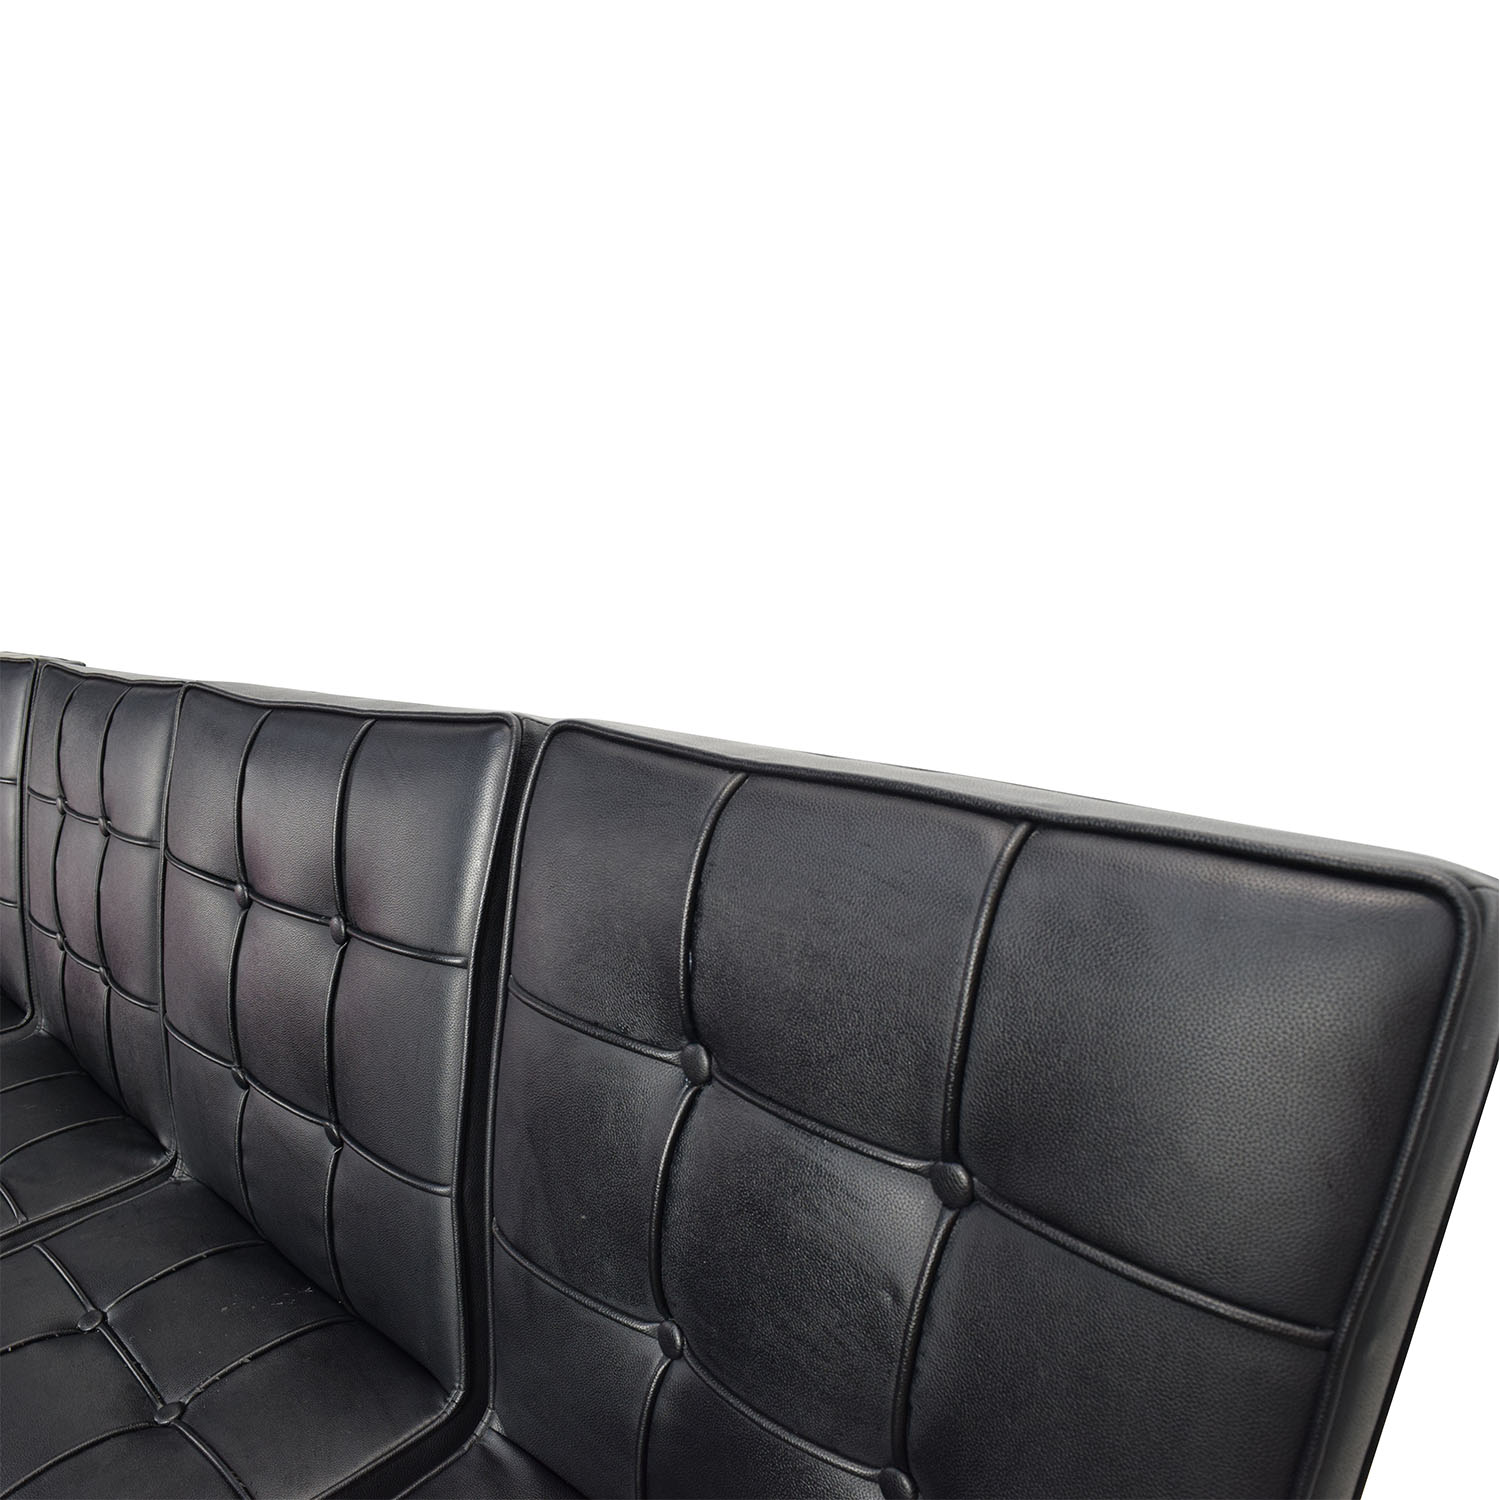 Leather Conference Room Chairs 80 Off Black Leather Conference Room Chair Set Chairs